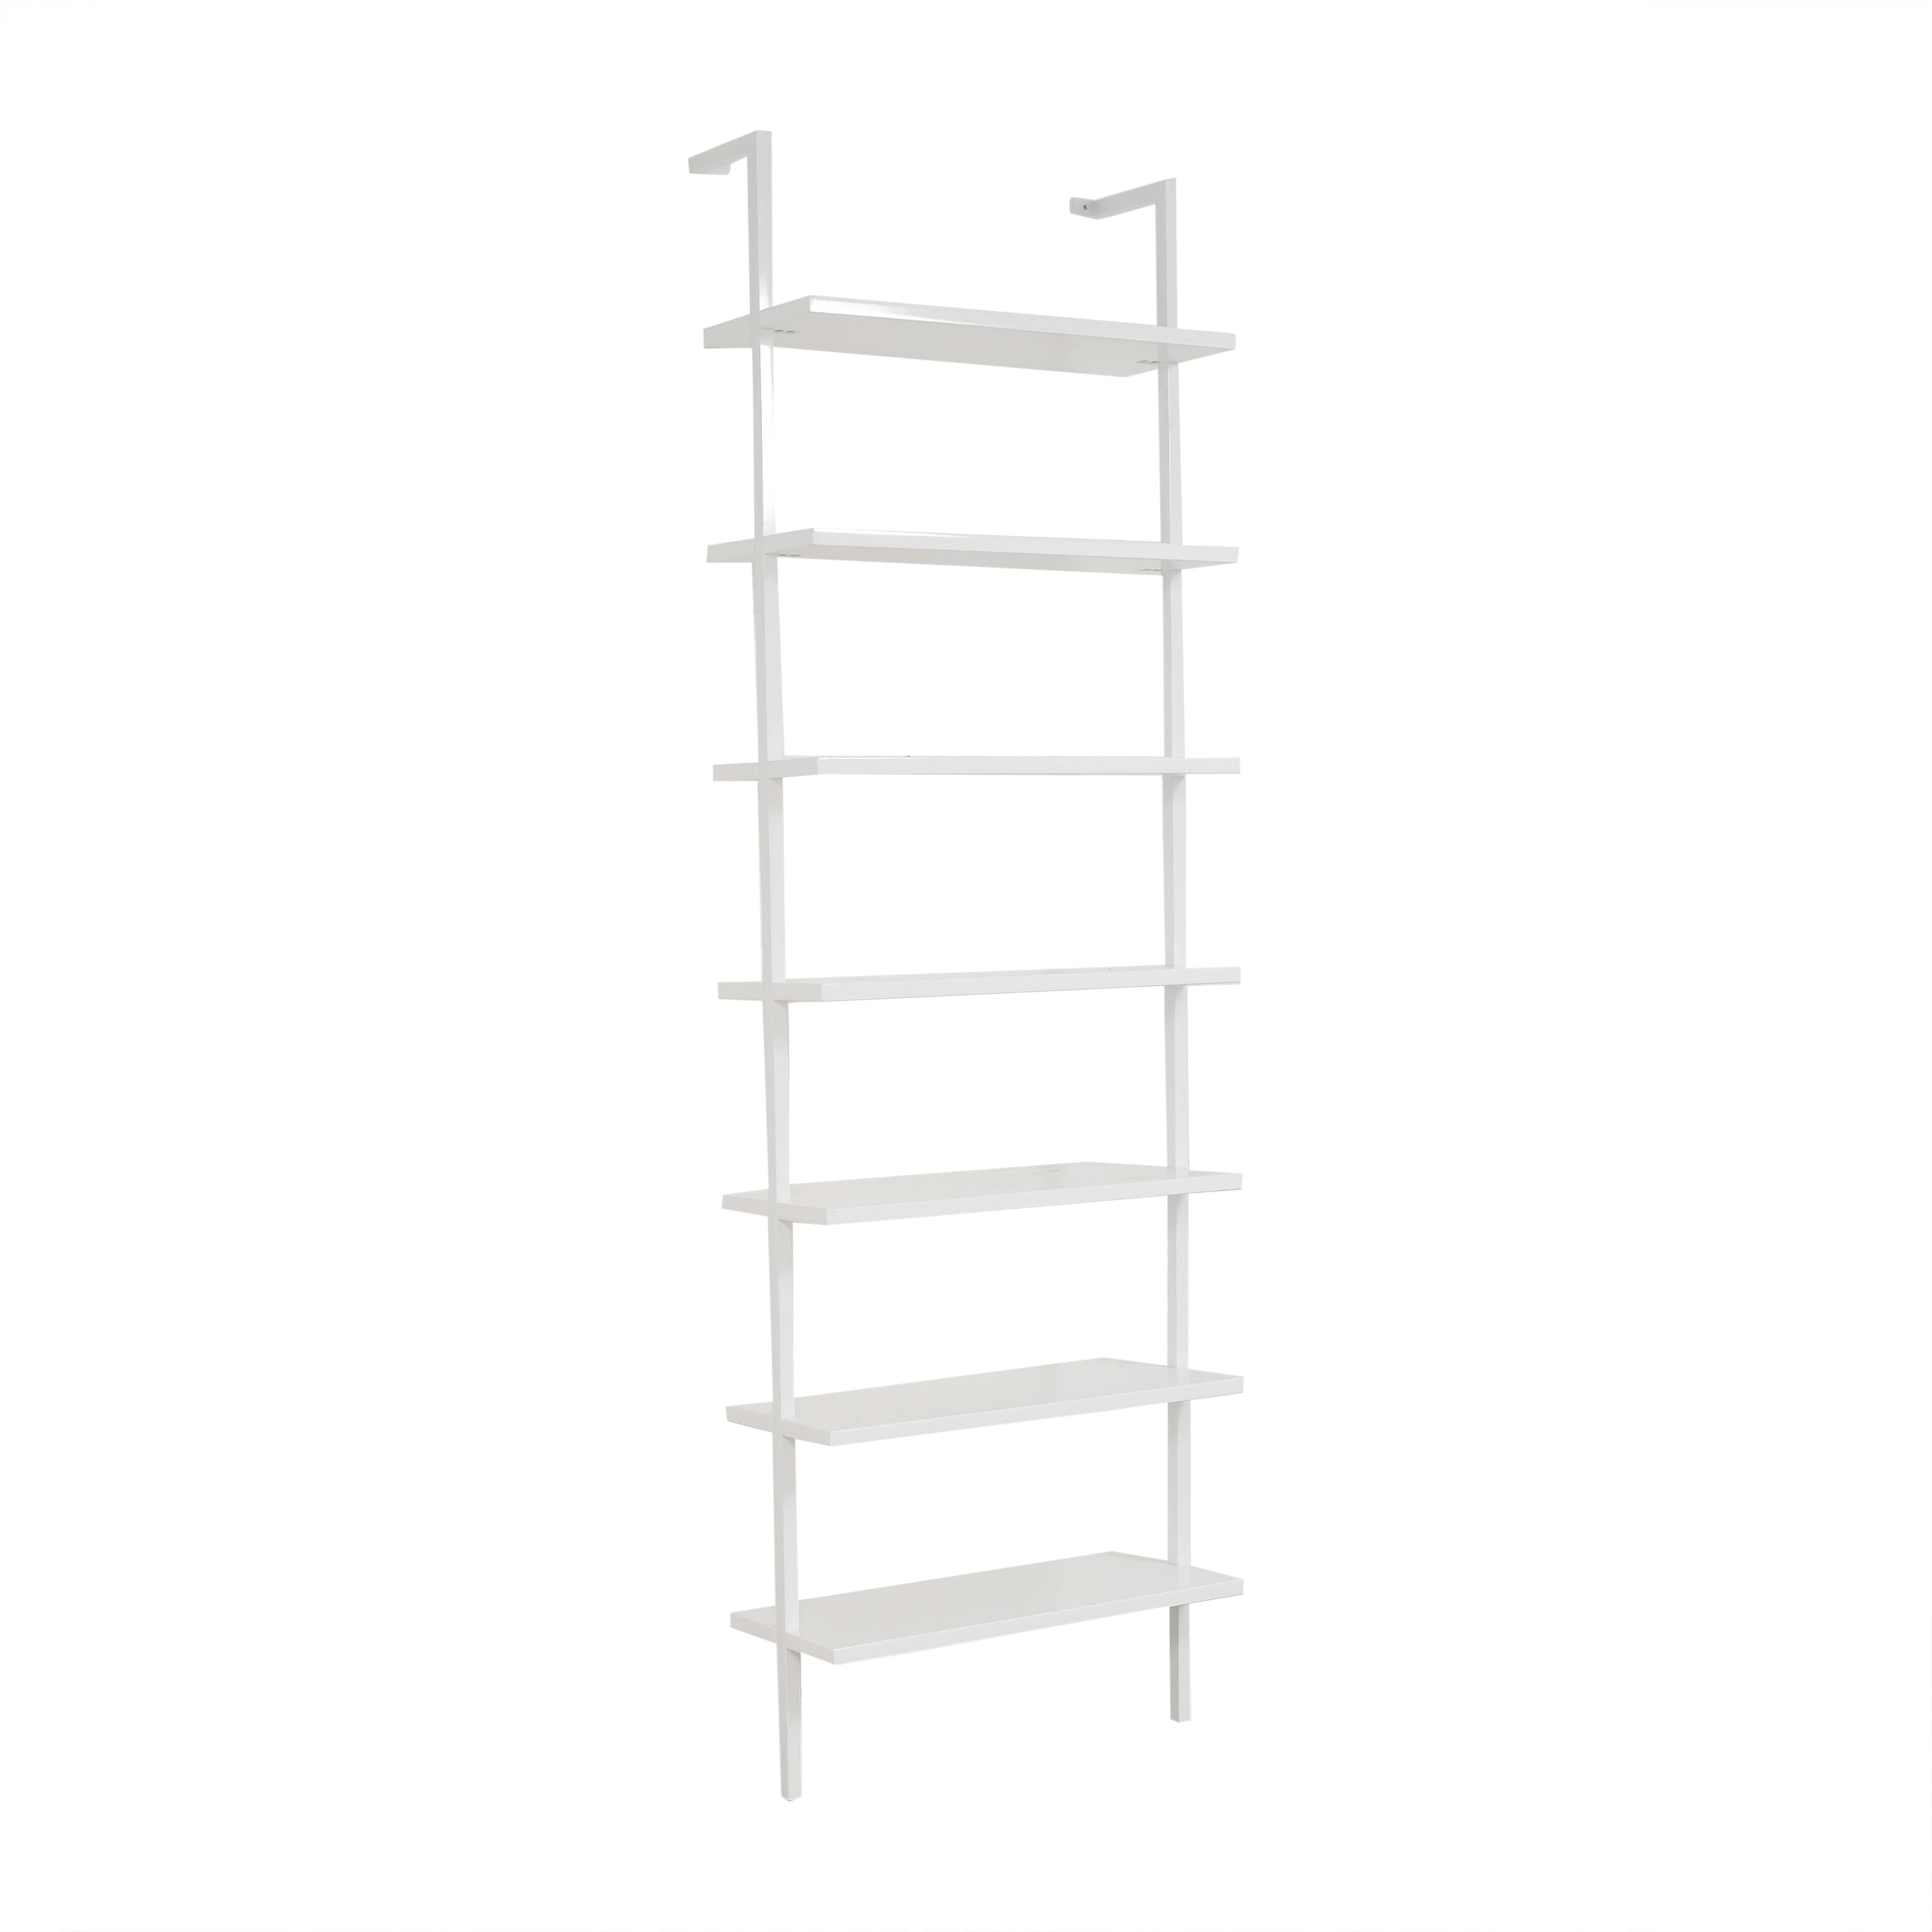 CB2 CB2 Stairway Bookcase Bookcases & Shelving